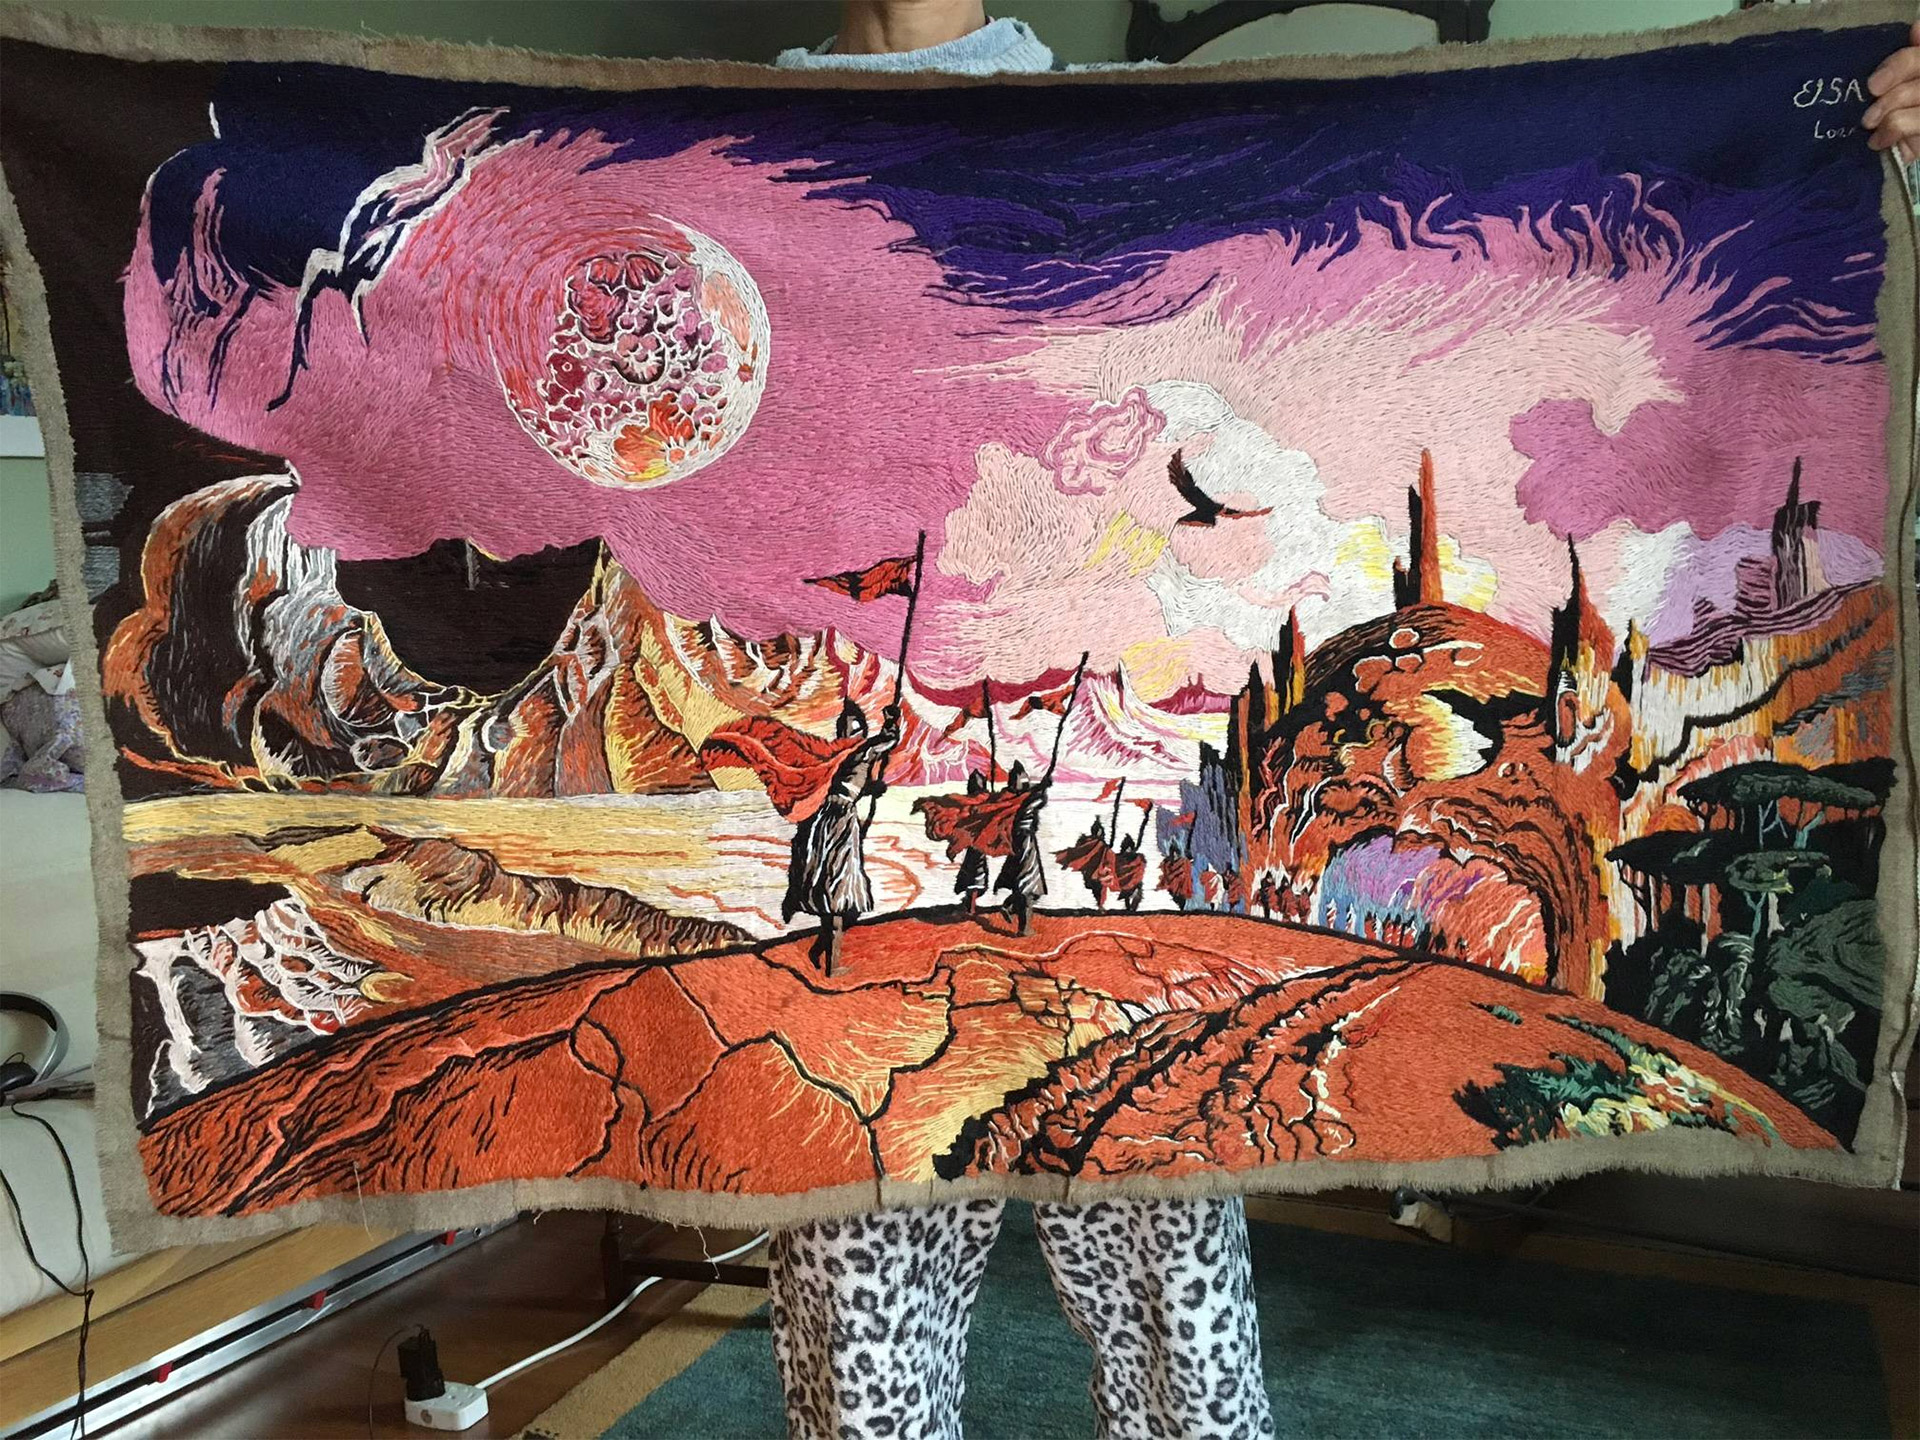 Woman Stitches Amazing Scenes from Dune